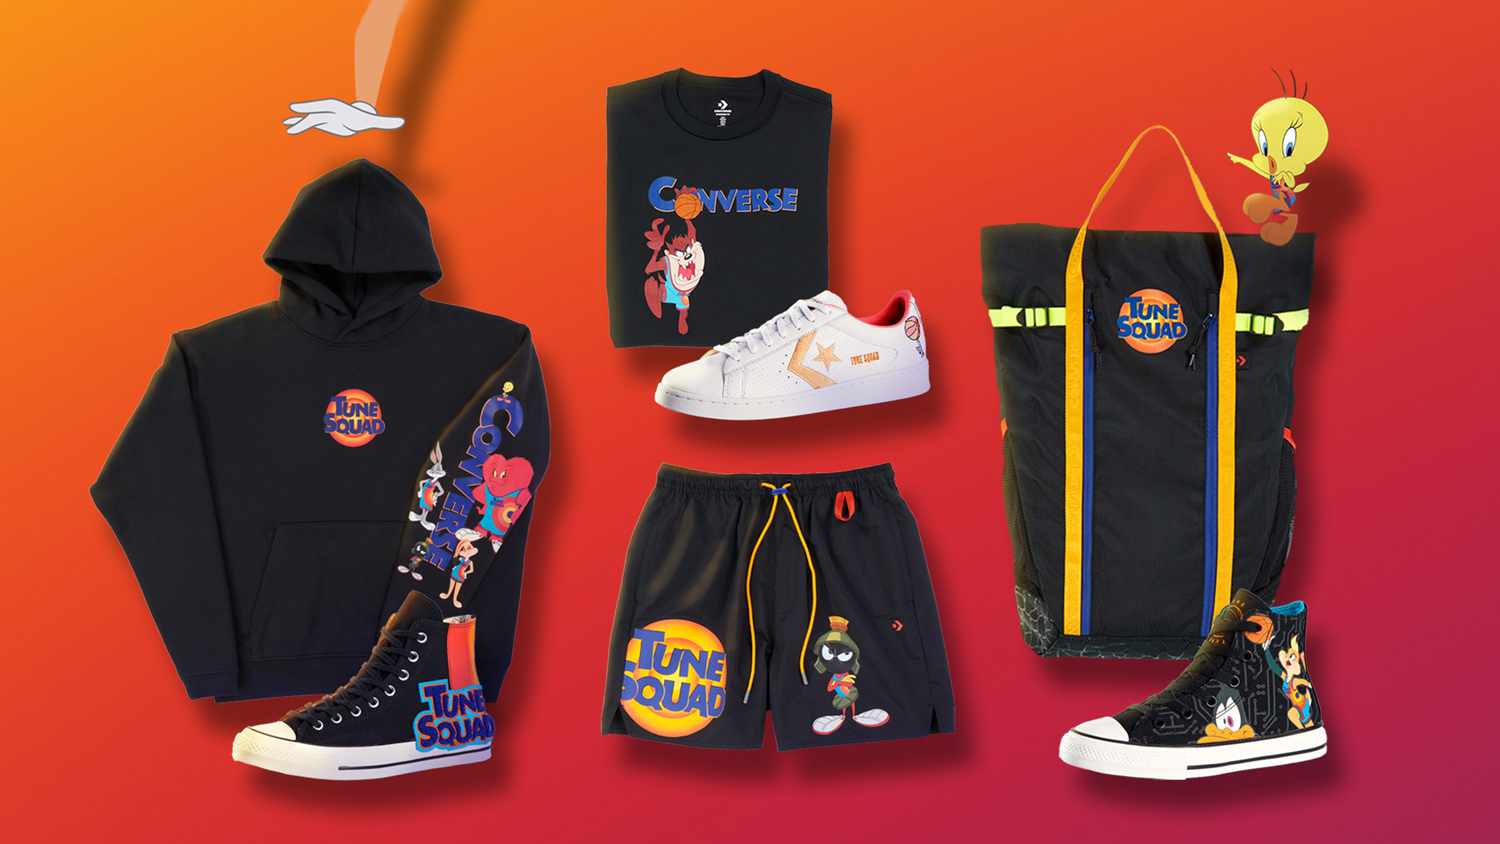 converse-space-jam-a-new-legacy-clothing-shoes